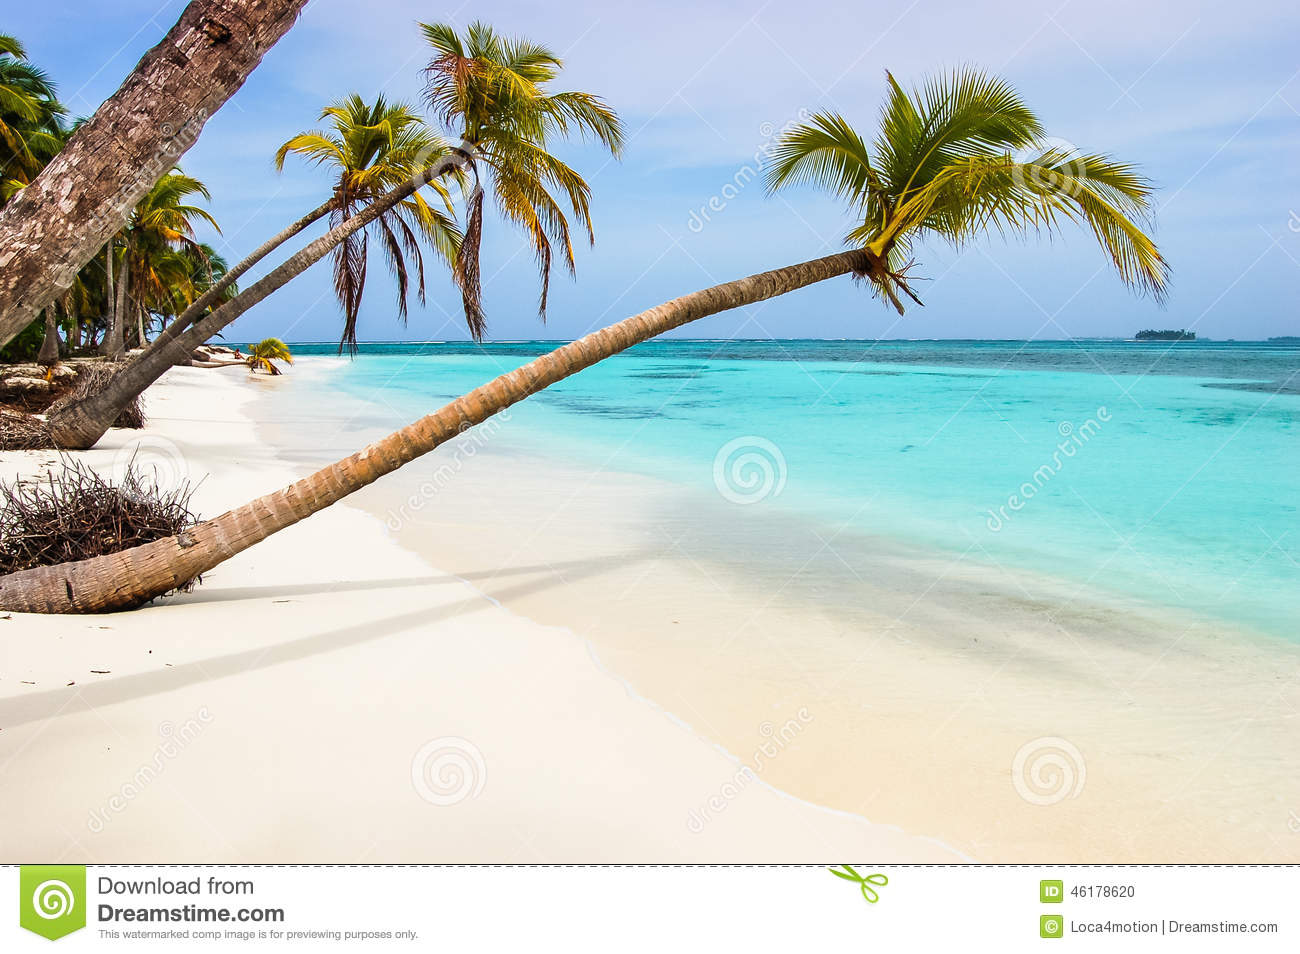 Explore The Beauty Of Caribbean: Paradise Beach On Caribbean Island Stock Photo